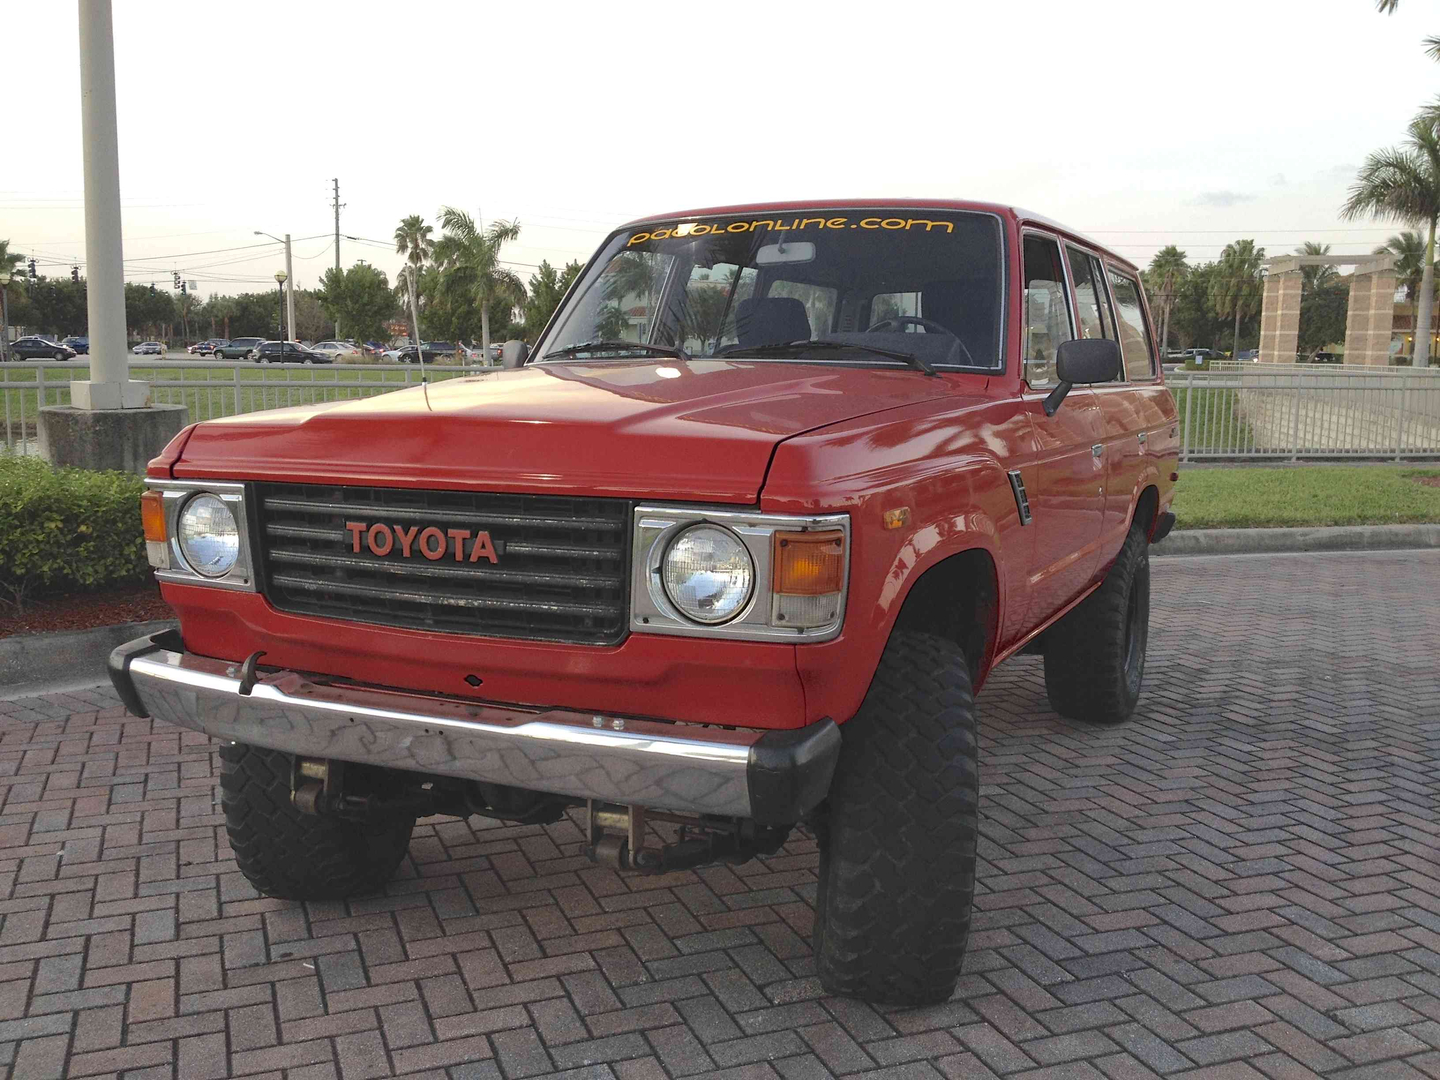 Fj60 1982 Toyota Land Cruiser We Believe The Is Most Comfortable Truck Of Fj Series It Has Space Comfort For A Road Trip With Family And Capability To Go